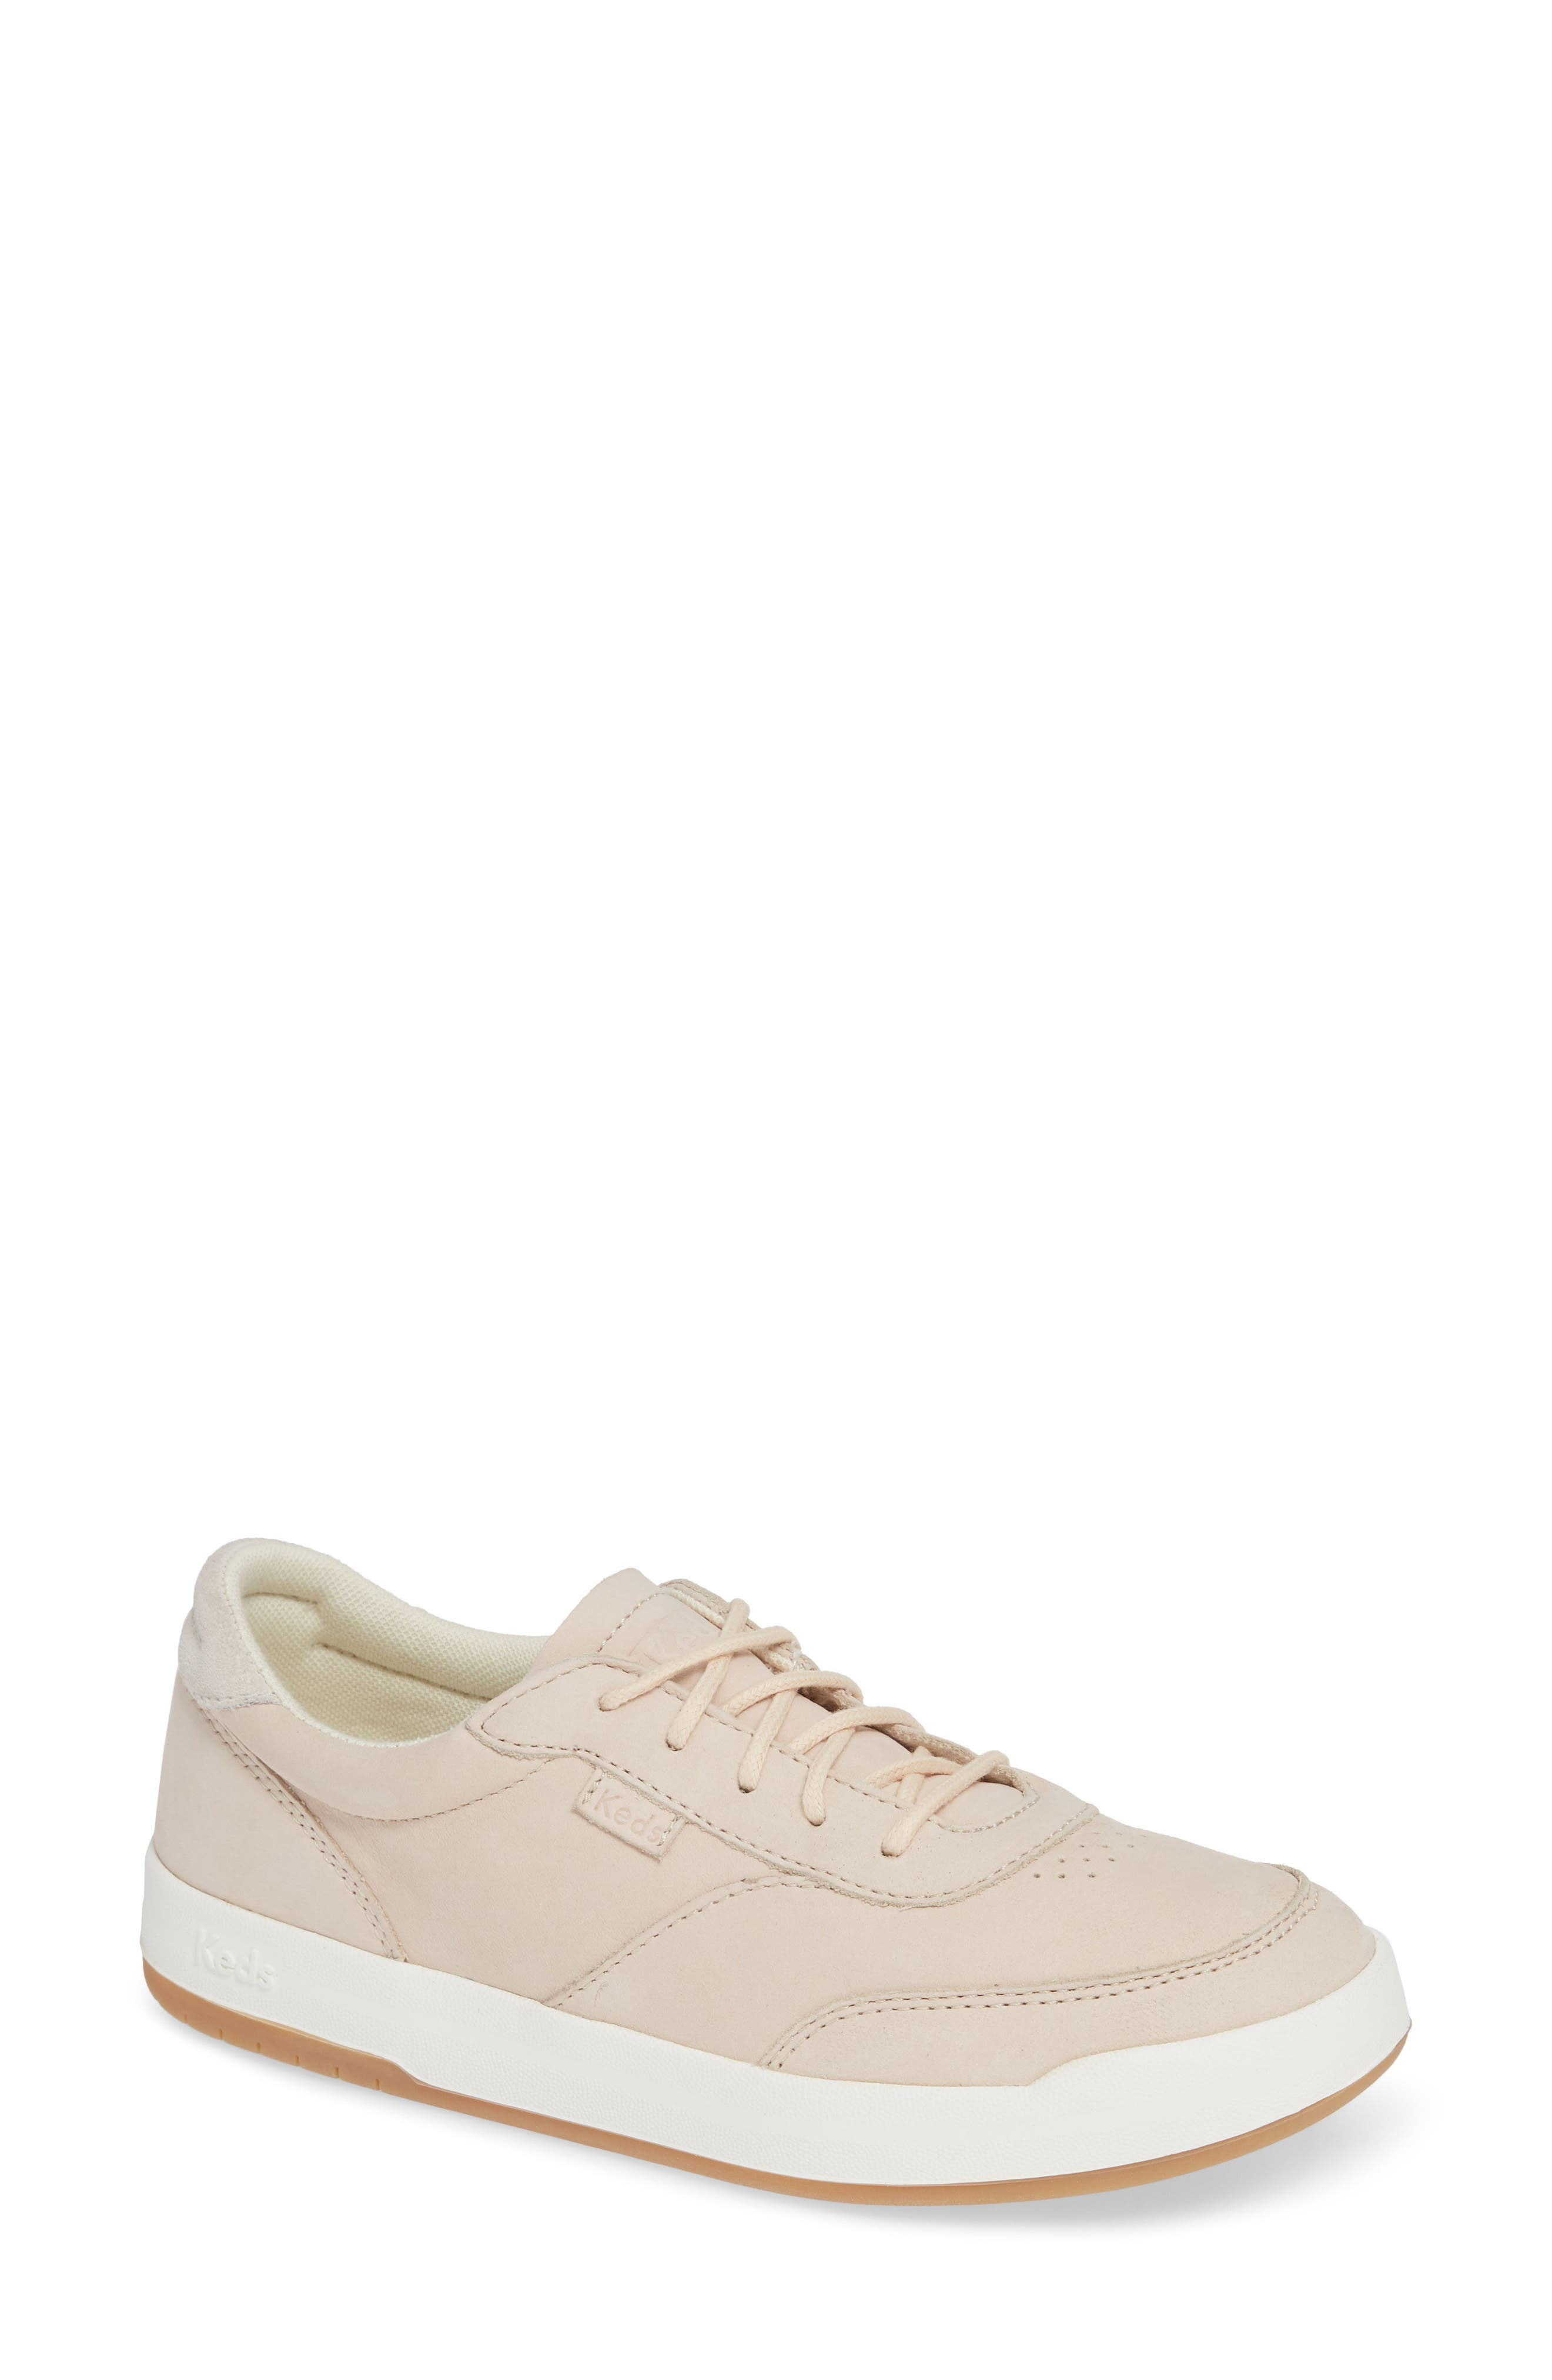 Match Point Sneaker,                             Main thumbnail 1, color,                             685